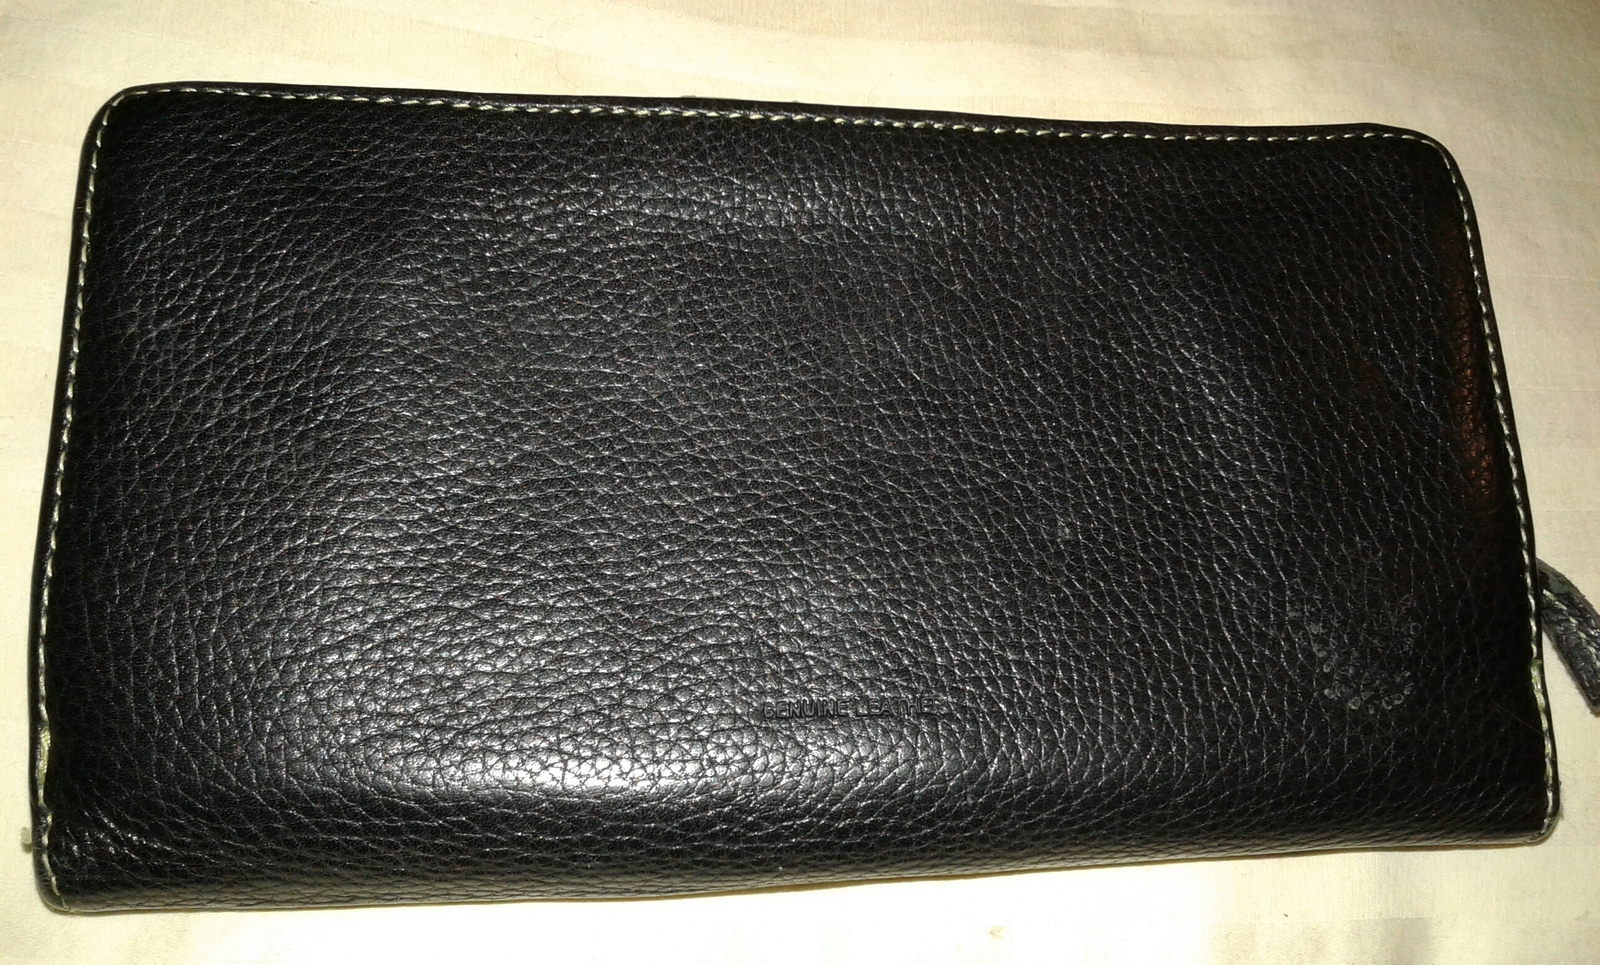 Black leather clutch checkbook wallet pre-owned green interior